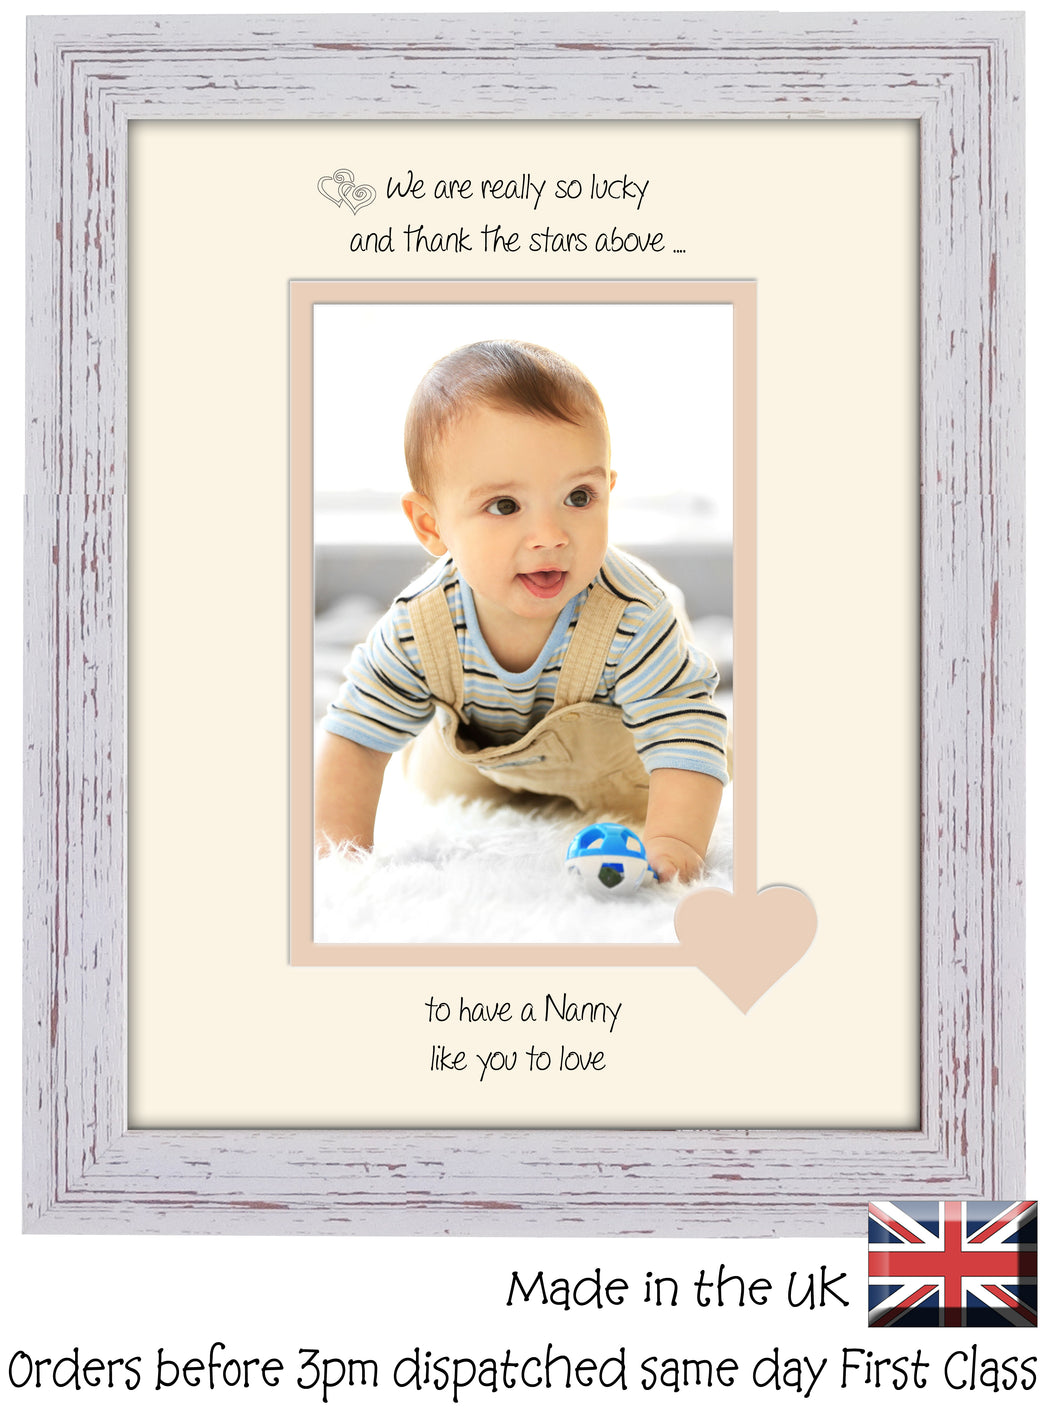 Nanny Photo Frame - We Thank the stars Nanny Portrait photo frame 6